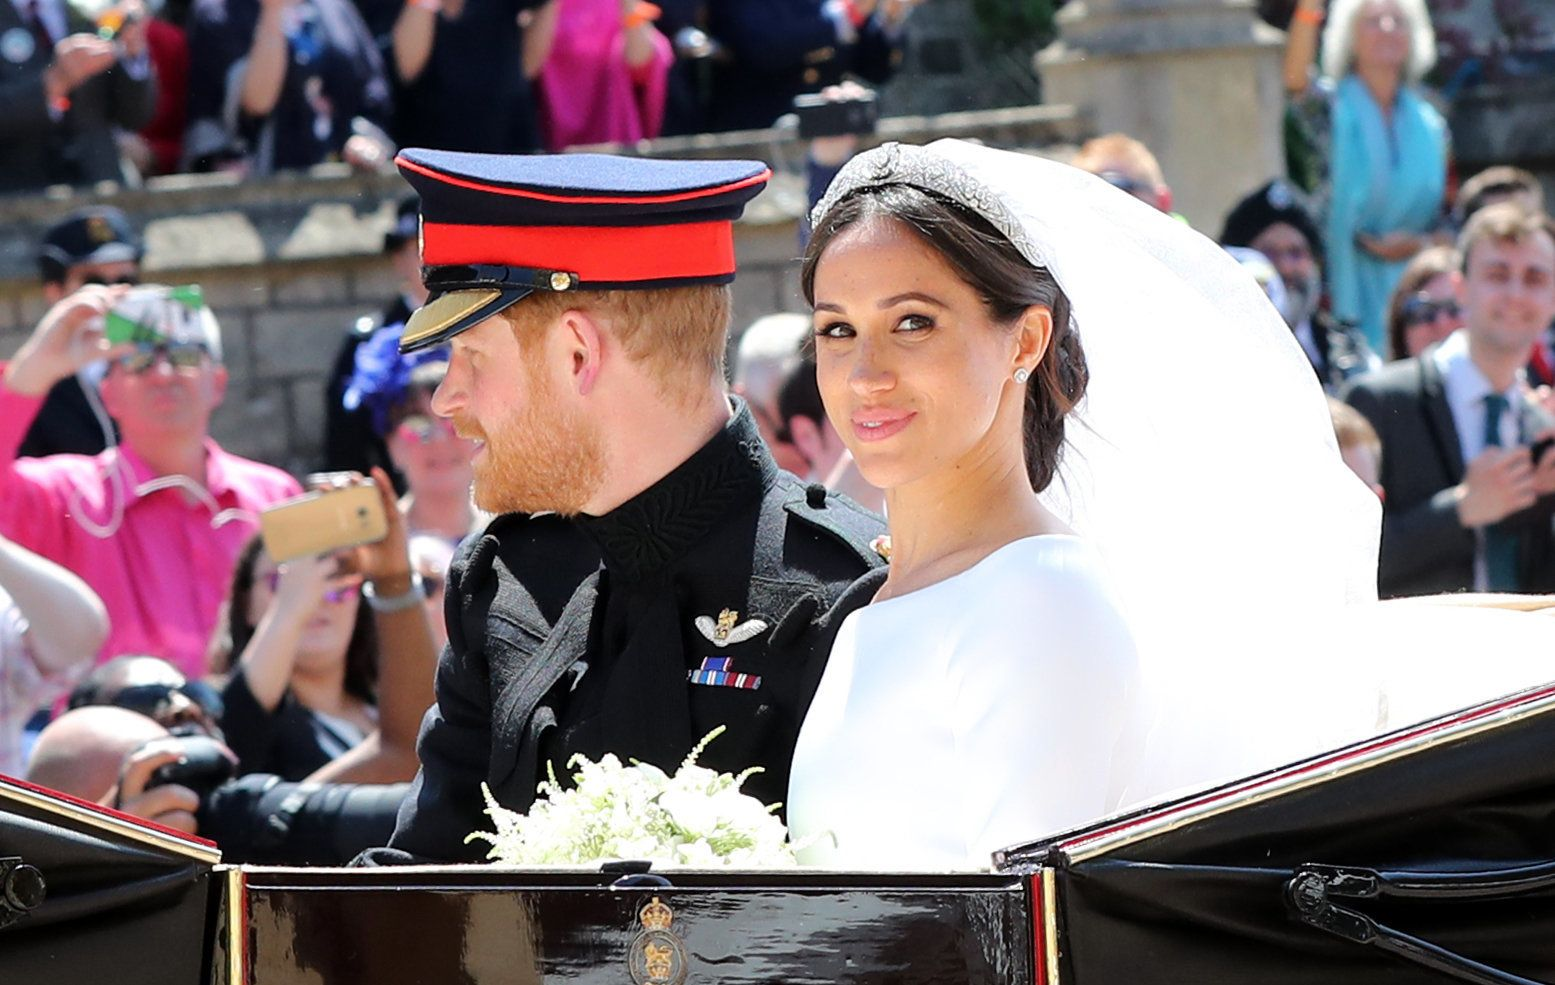 Prince Harry, Duke of Sussex and the Duchess of Sussex in the Ascot Landau carriage during the procession after getting married at St George's Chapel, Windsor Castle on May 19, 2018 in Windsor, England.